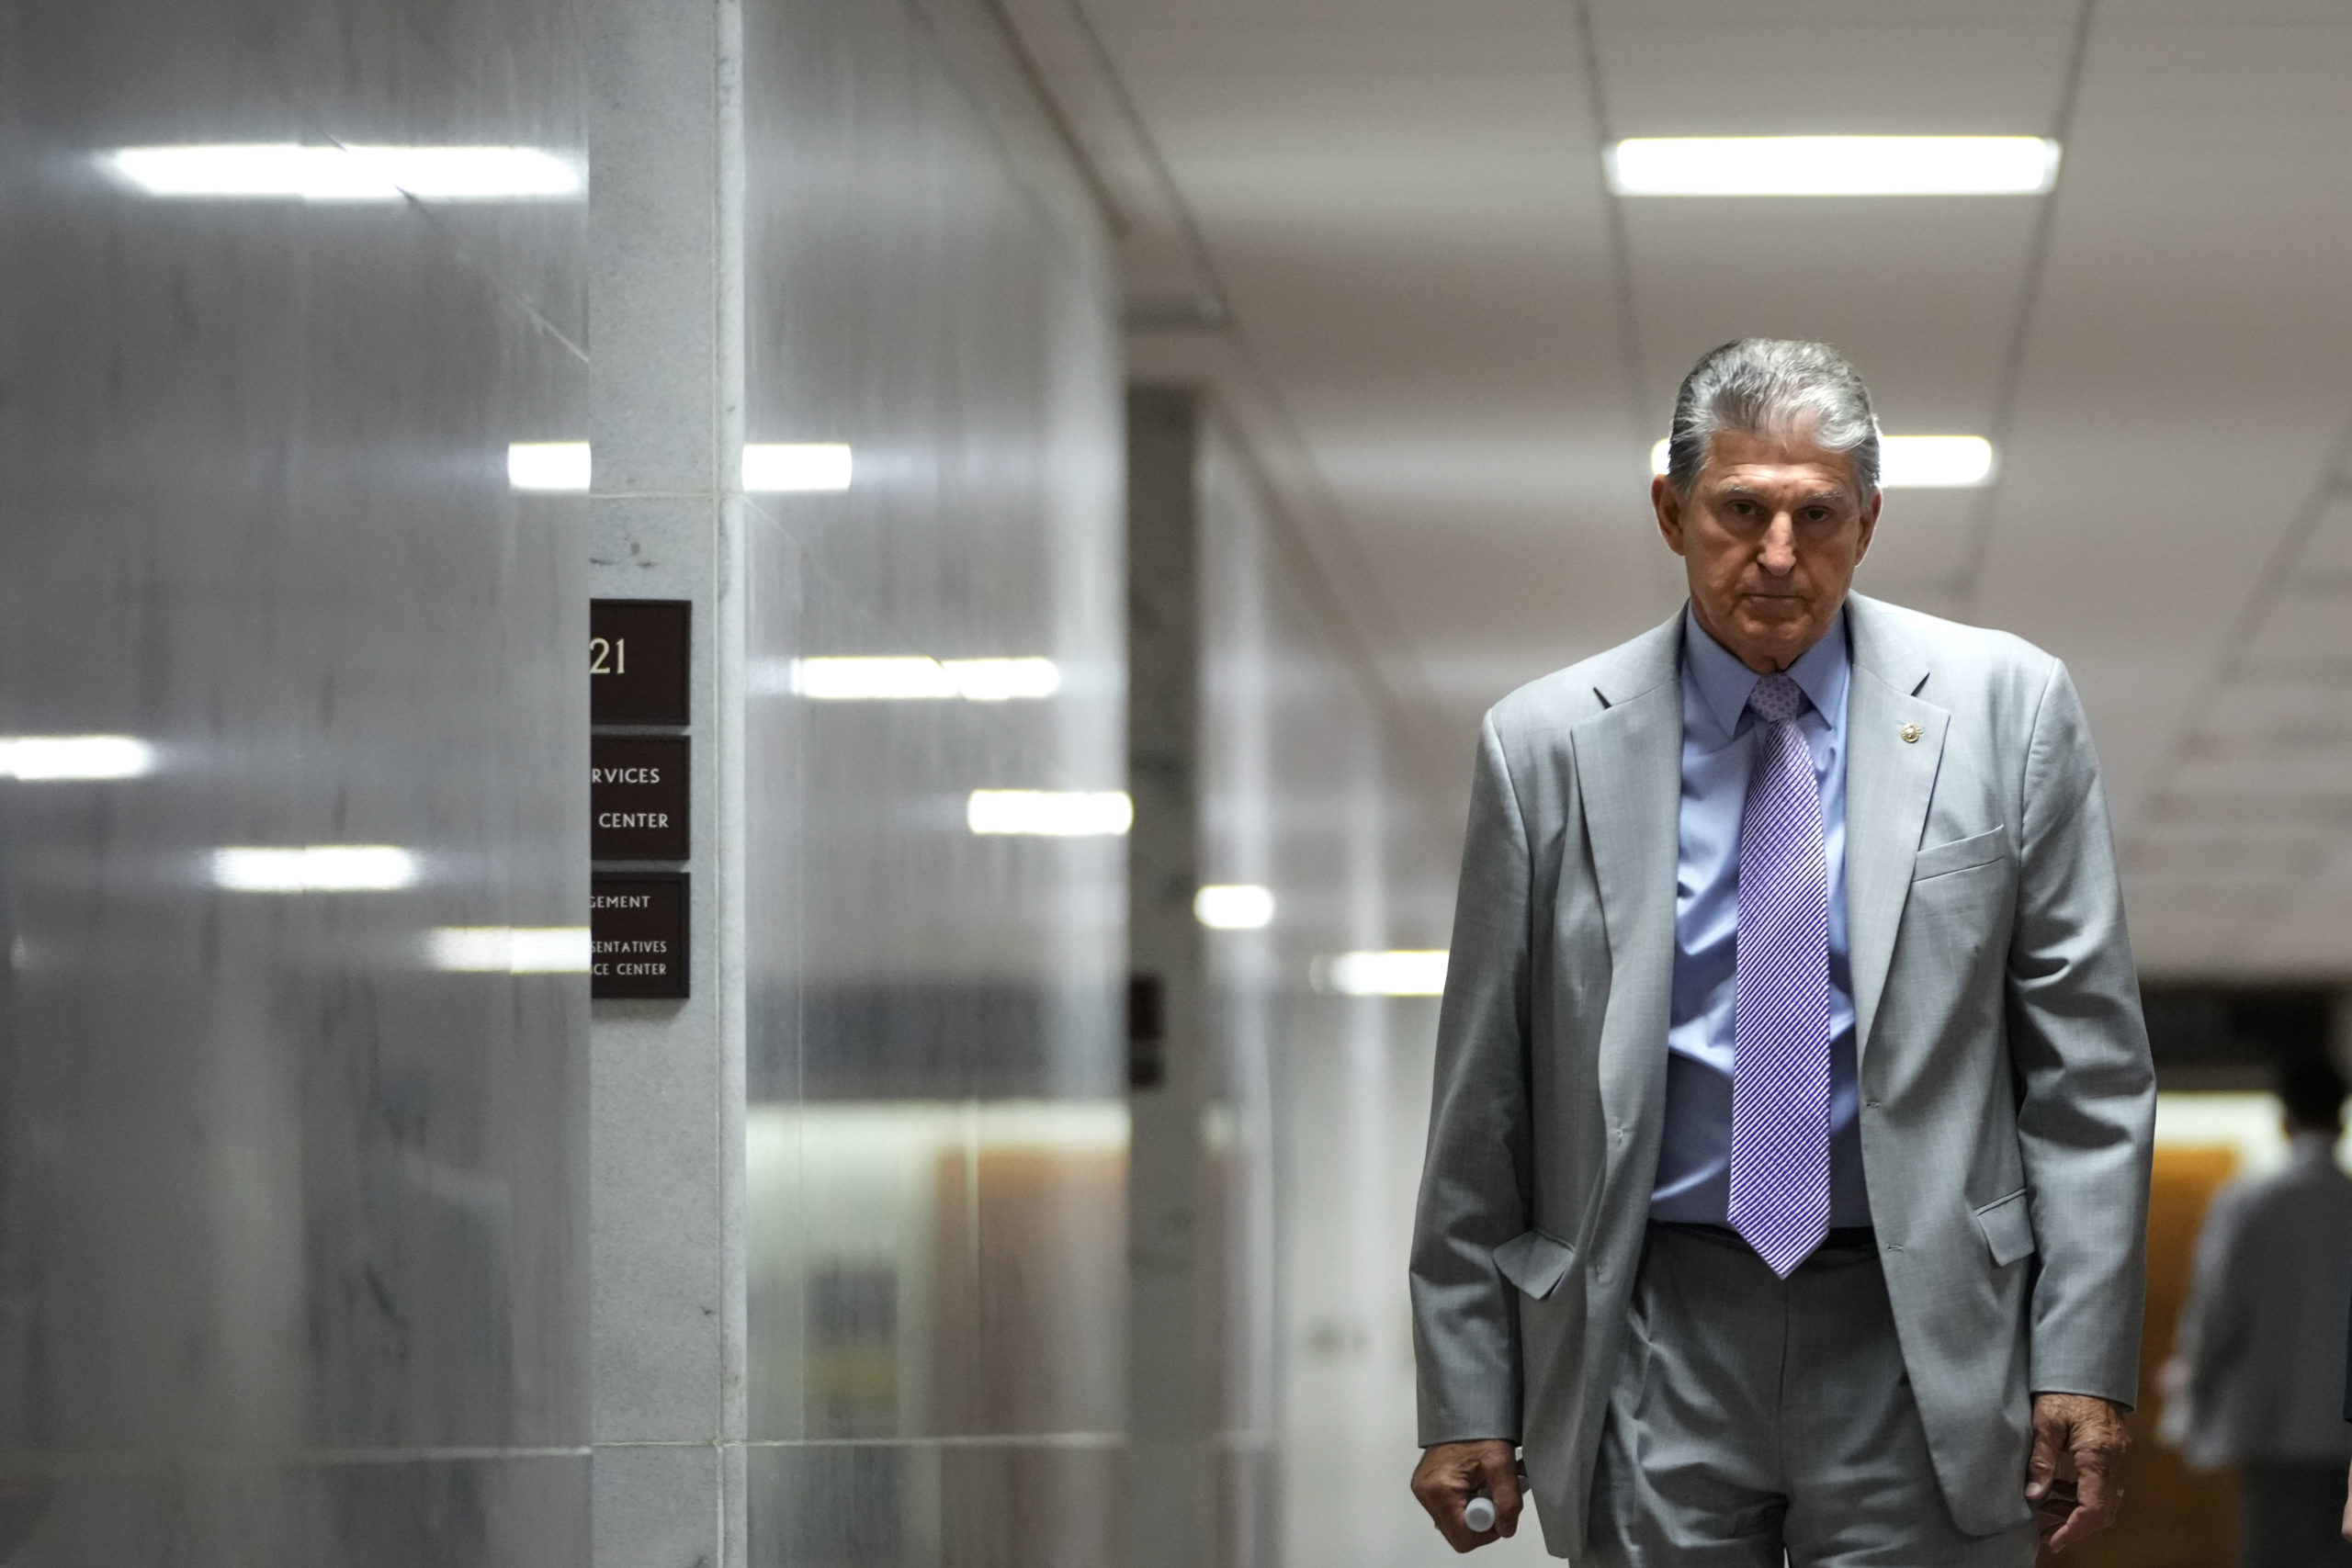 WASHINGTON, DC - JUNE 9: Sen. Joe Manchin (D-WV walks through the Dirksen Senate Office building on Capitol Hill on June 9, 2021 in Washington, DC. Over the weekend, Manchin announced that he will not support the For The People Act, the voting rights legislation that Democrats are trying to pass through the Senate. (Photo by Drew Angerer/Getty Images)